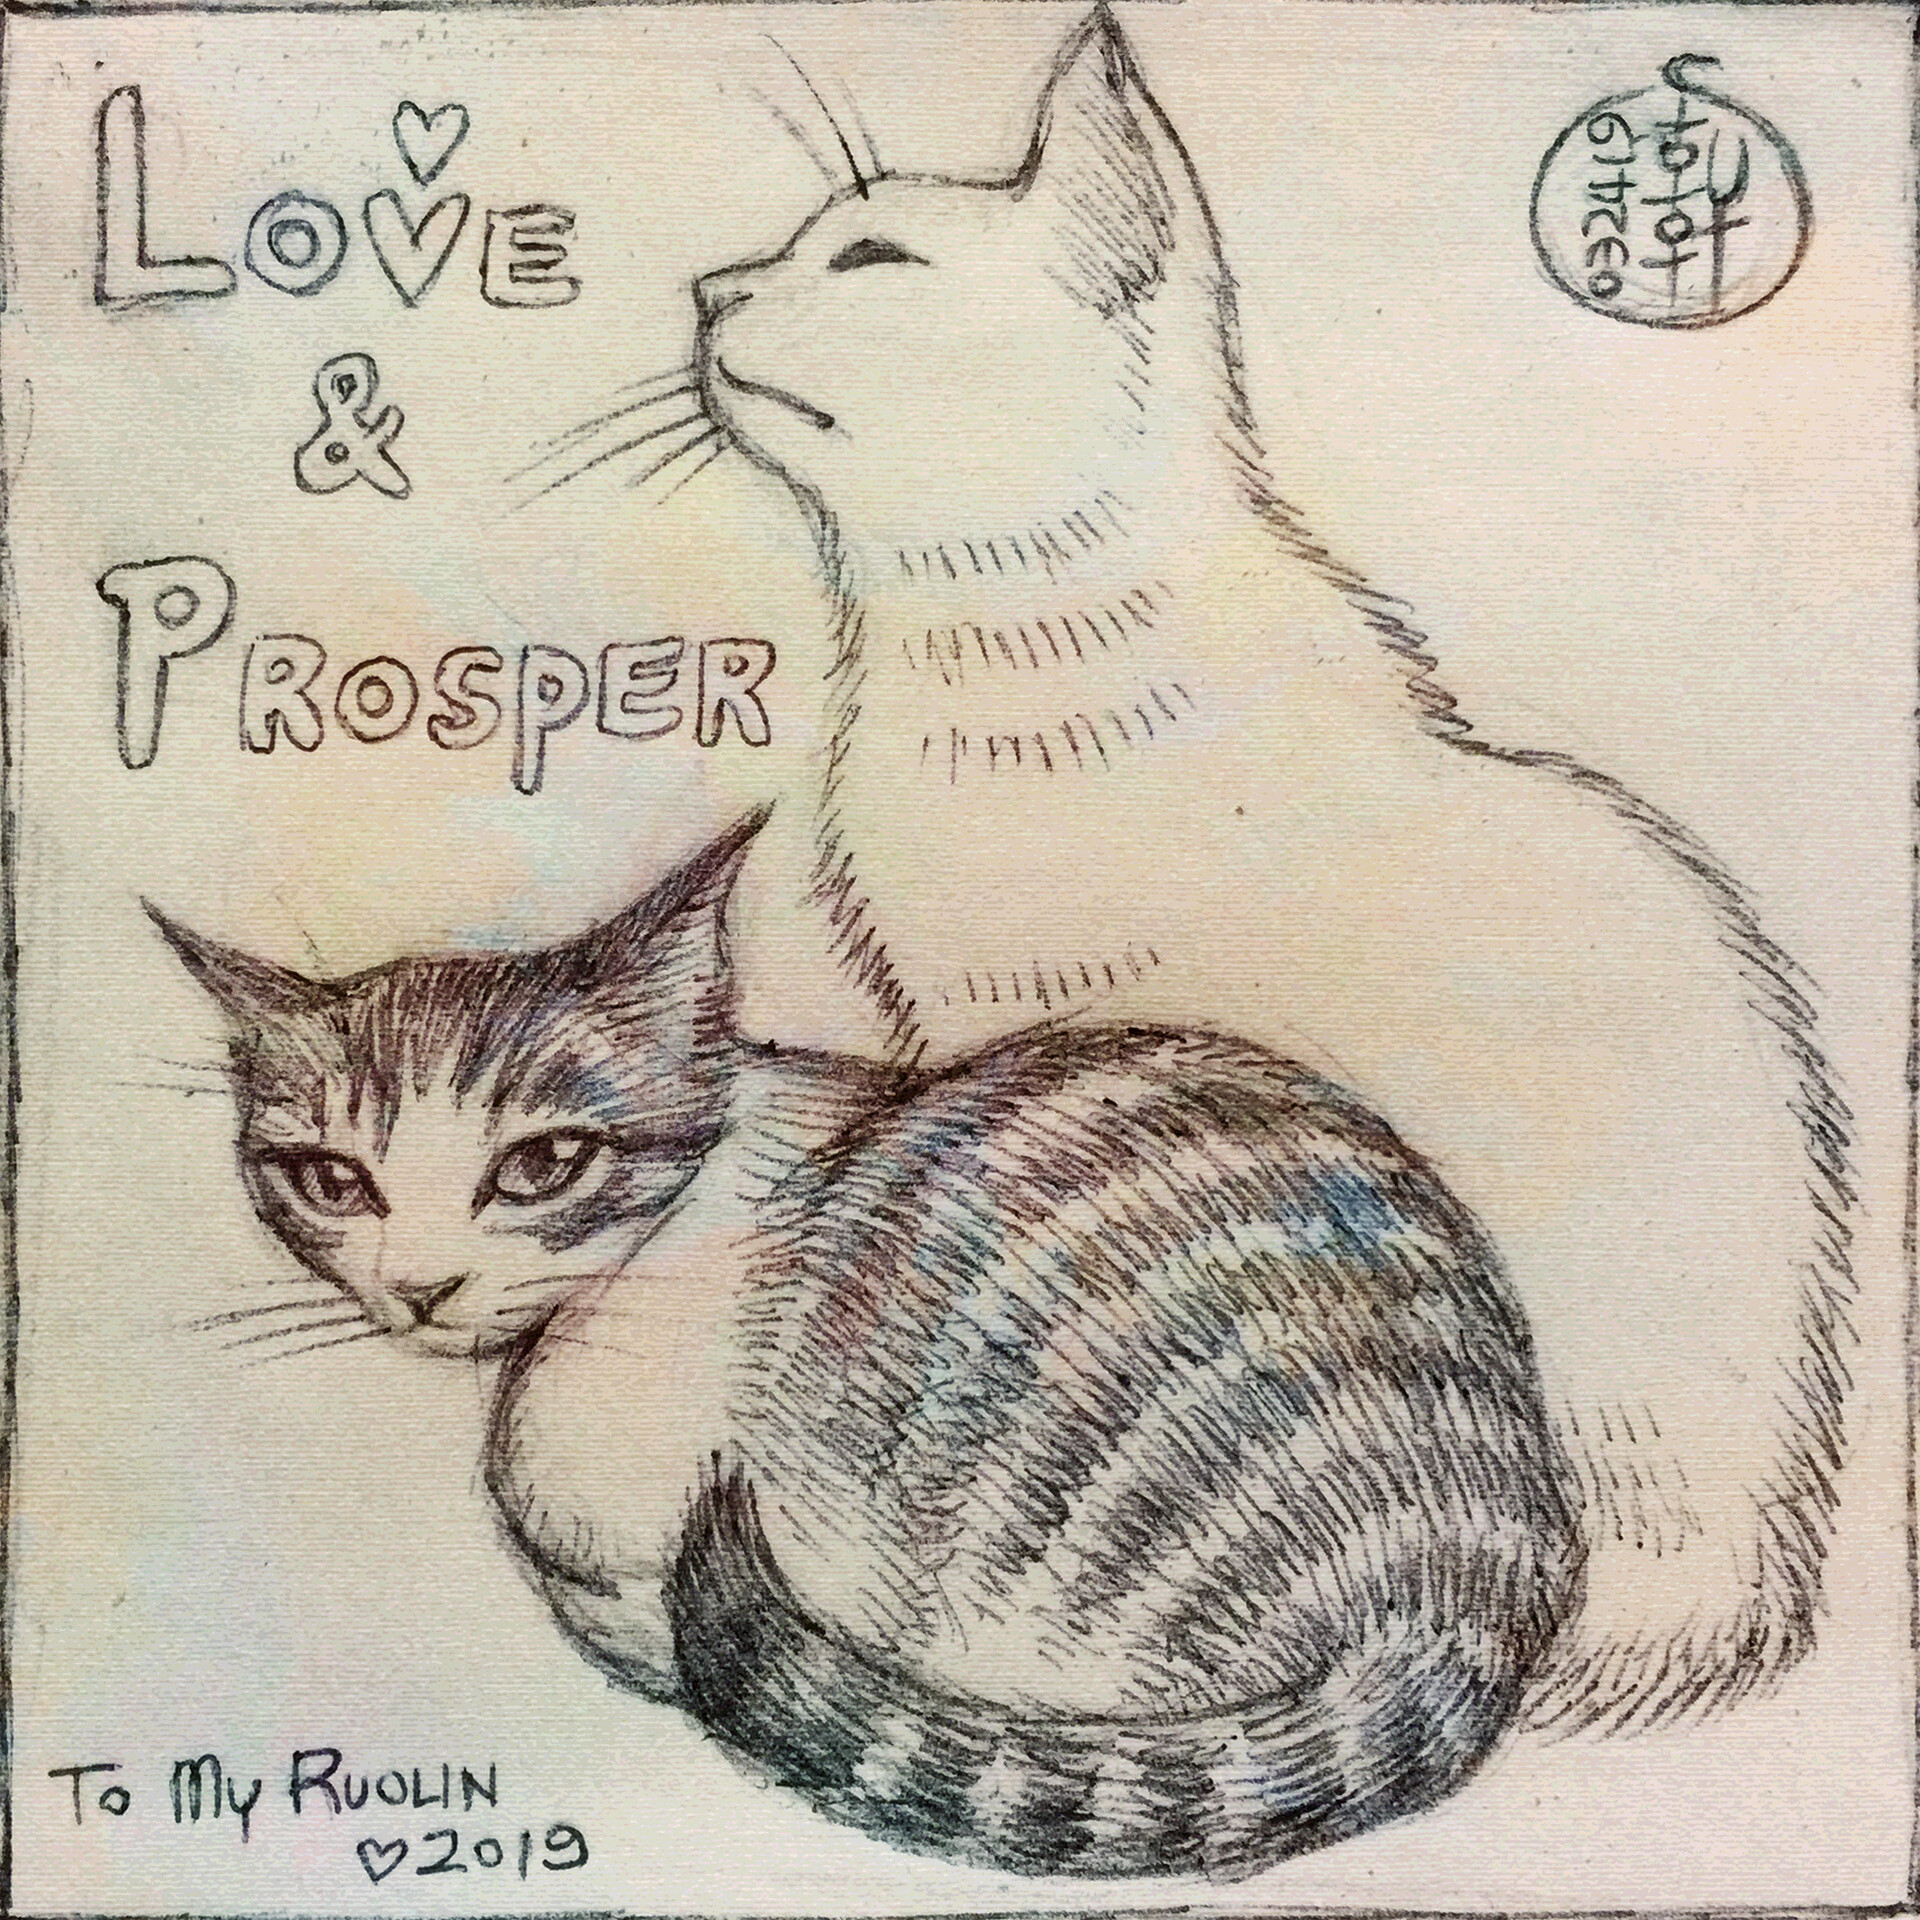 Love and Prosper - Sketch